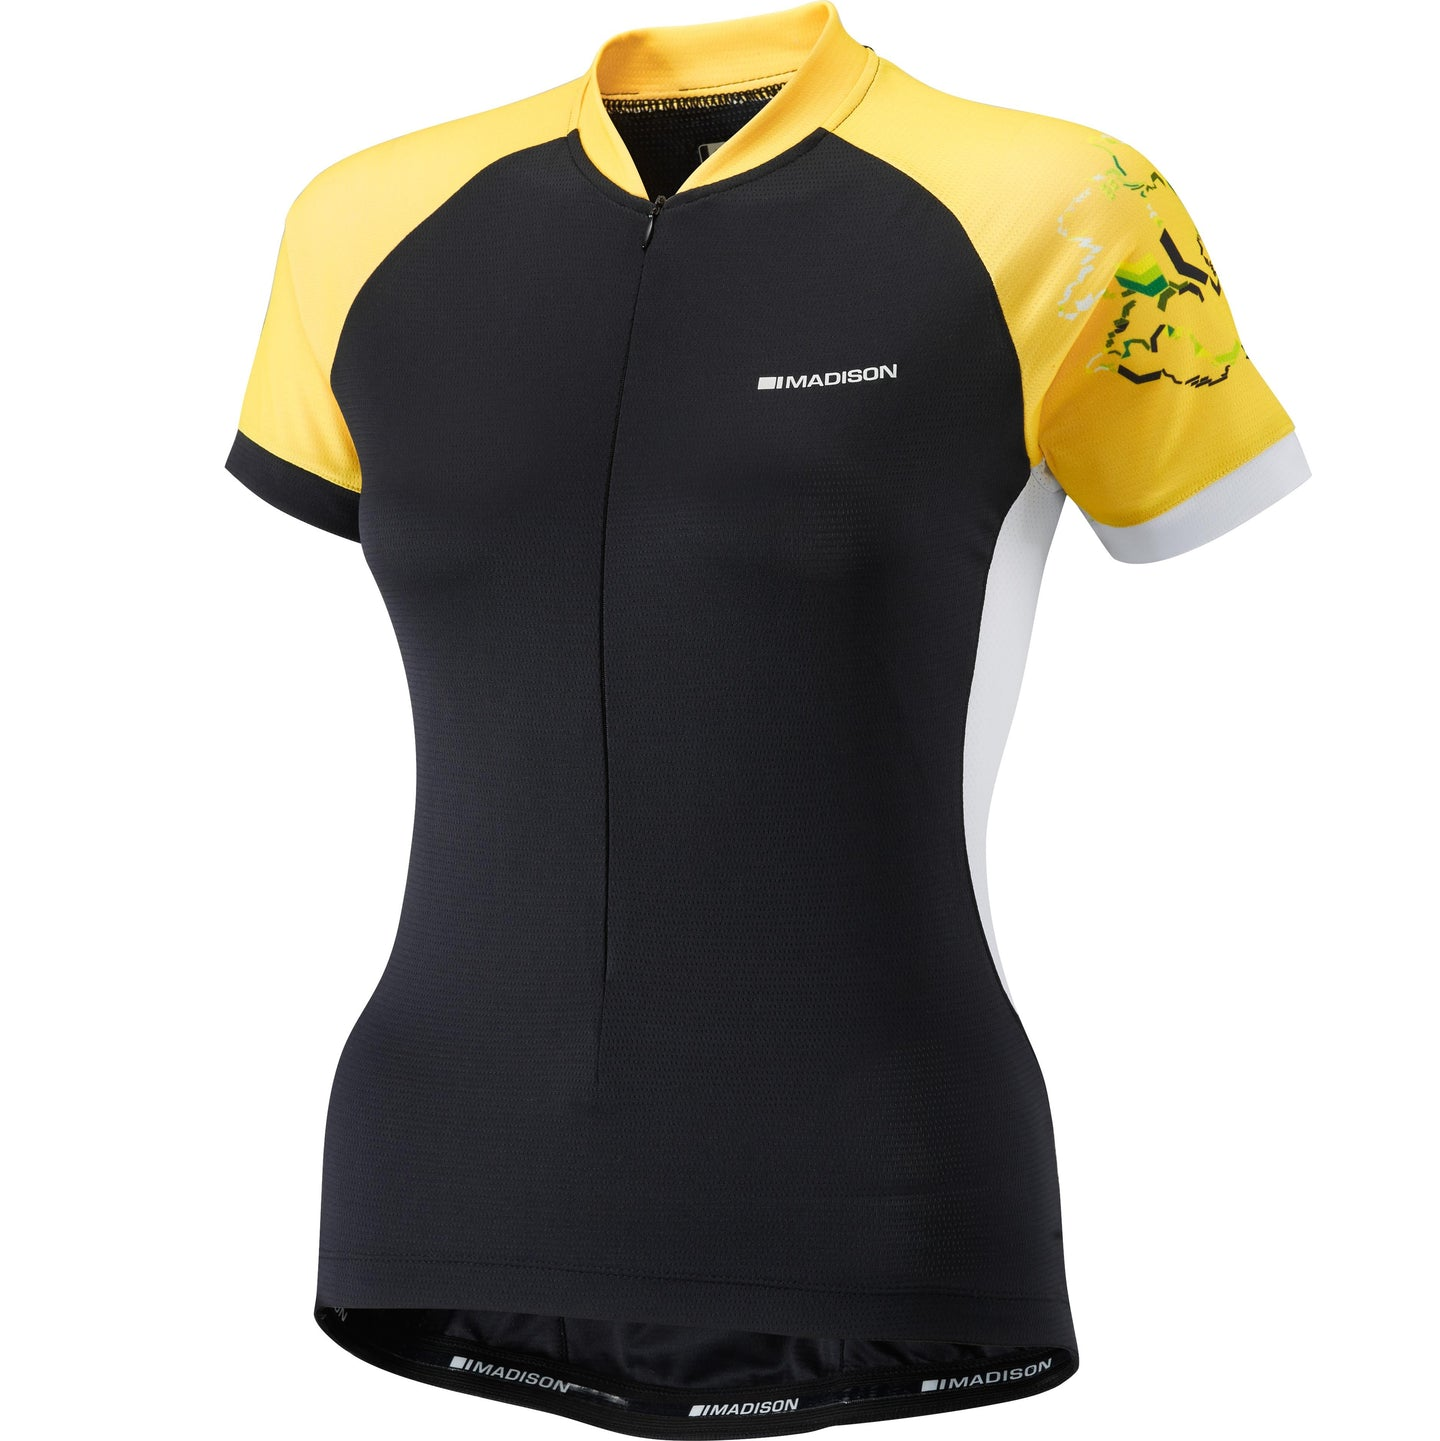 Madison Keirin women's short sleeve jersey, black / vibrant yellow | VeloVixen